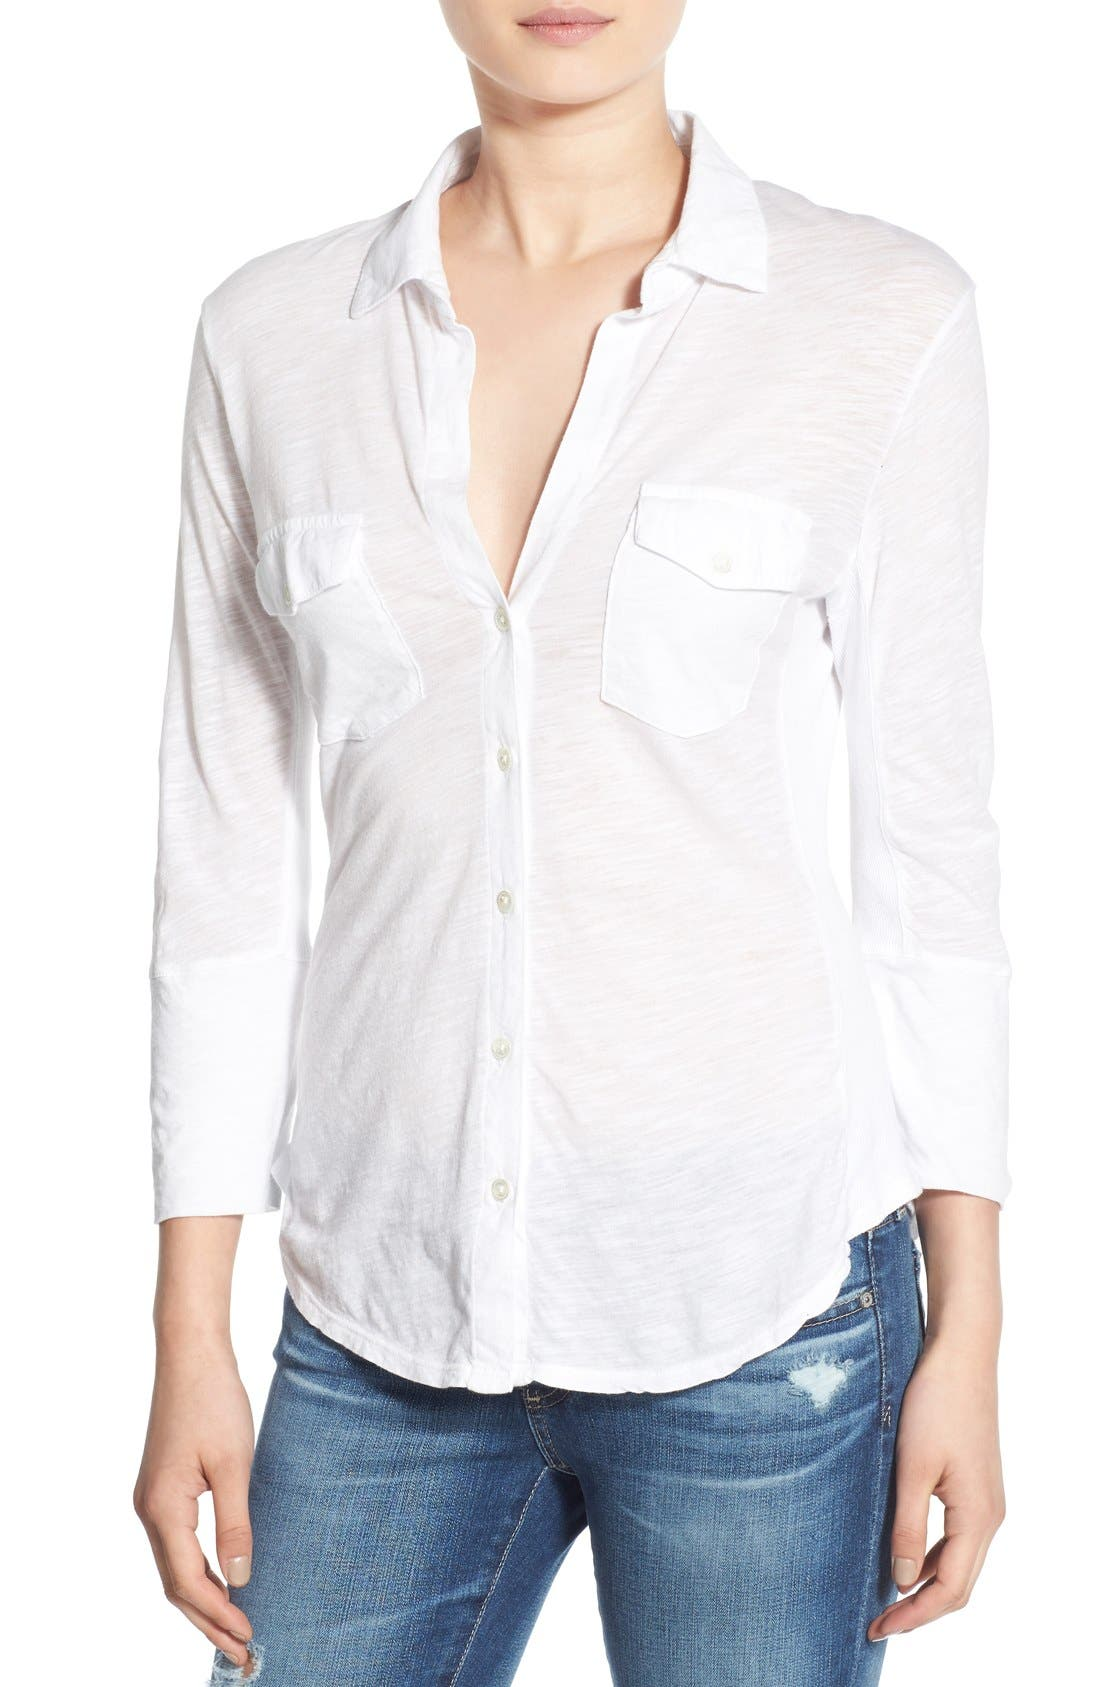 Alternate Image 1 Selected - James Perse Sheer Slub Panel Shirt